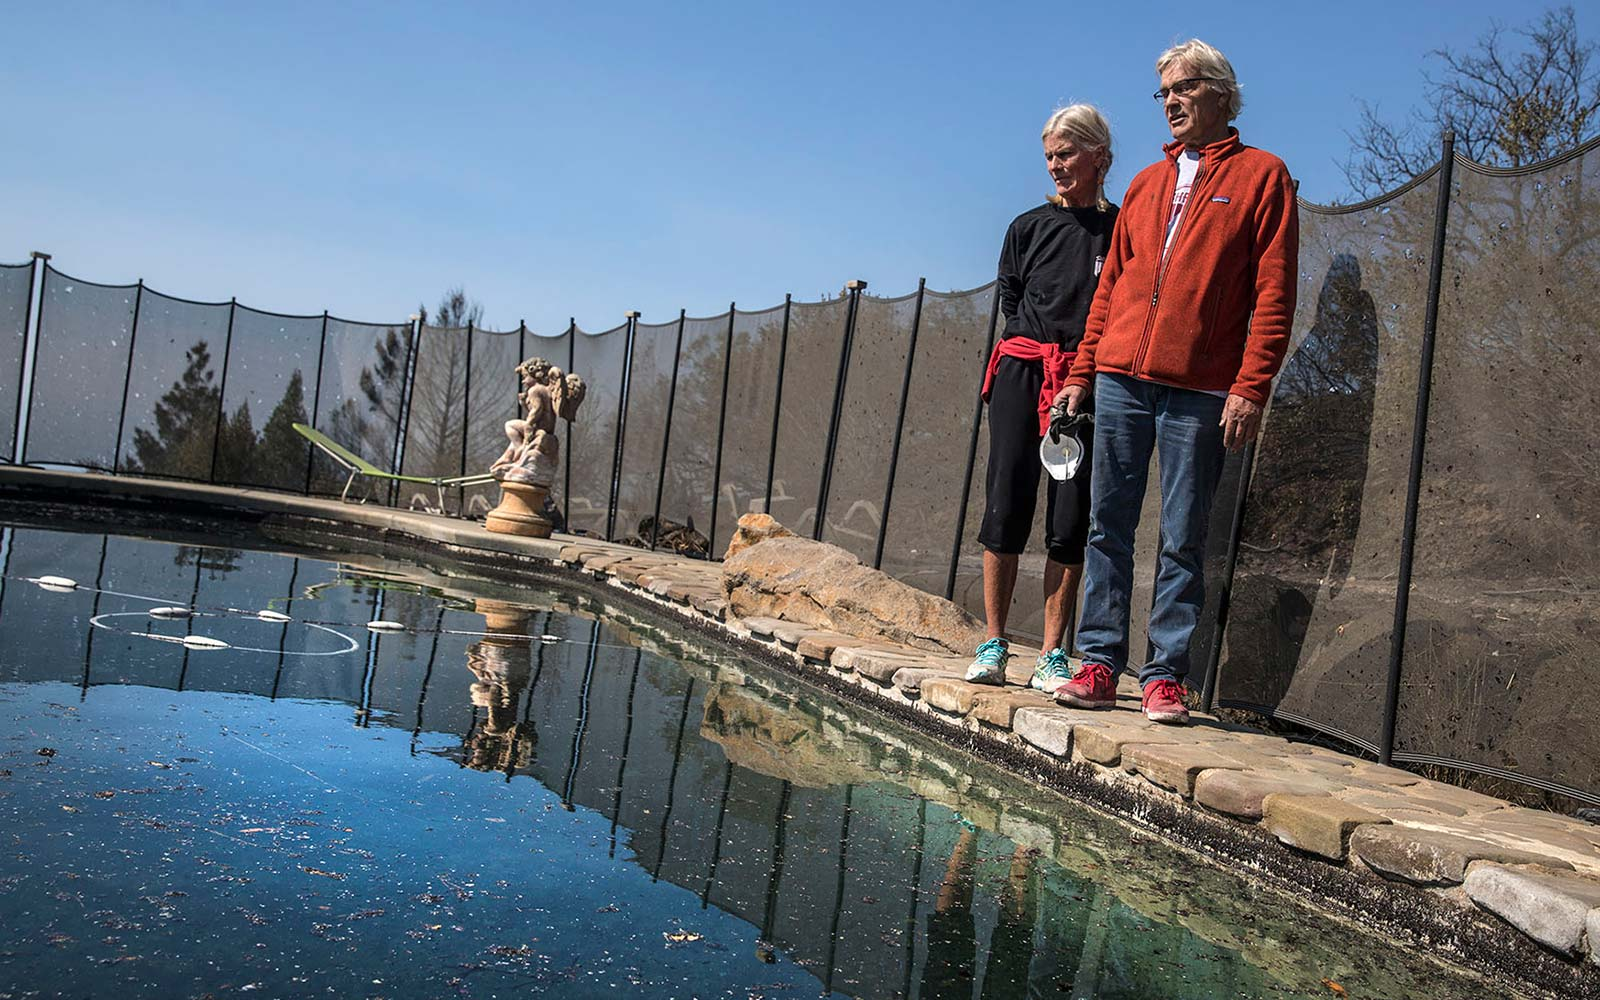 Couple Miraculously Survives California Wildfire in Neighbor's Pool